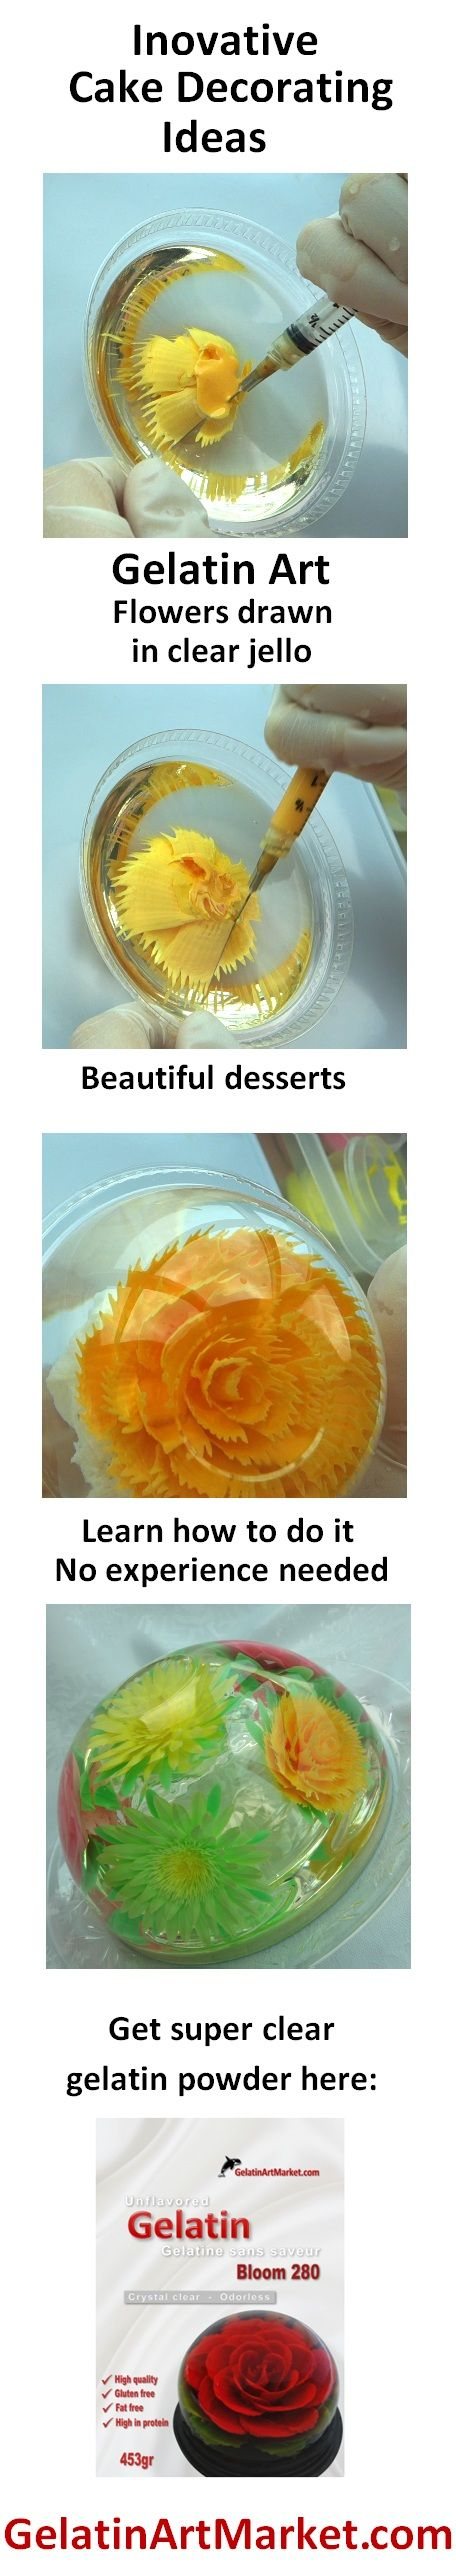 Creative Cake Decorating Ideas - Gelatin Art Jelly Flowers